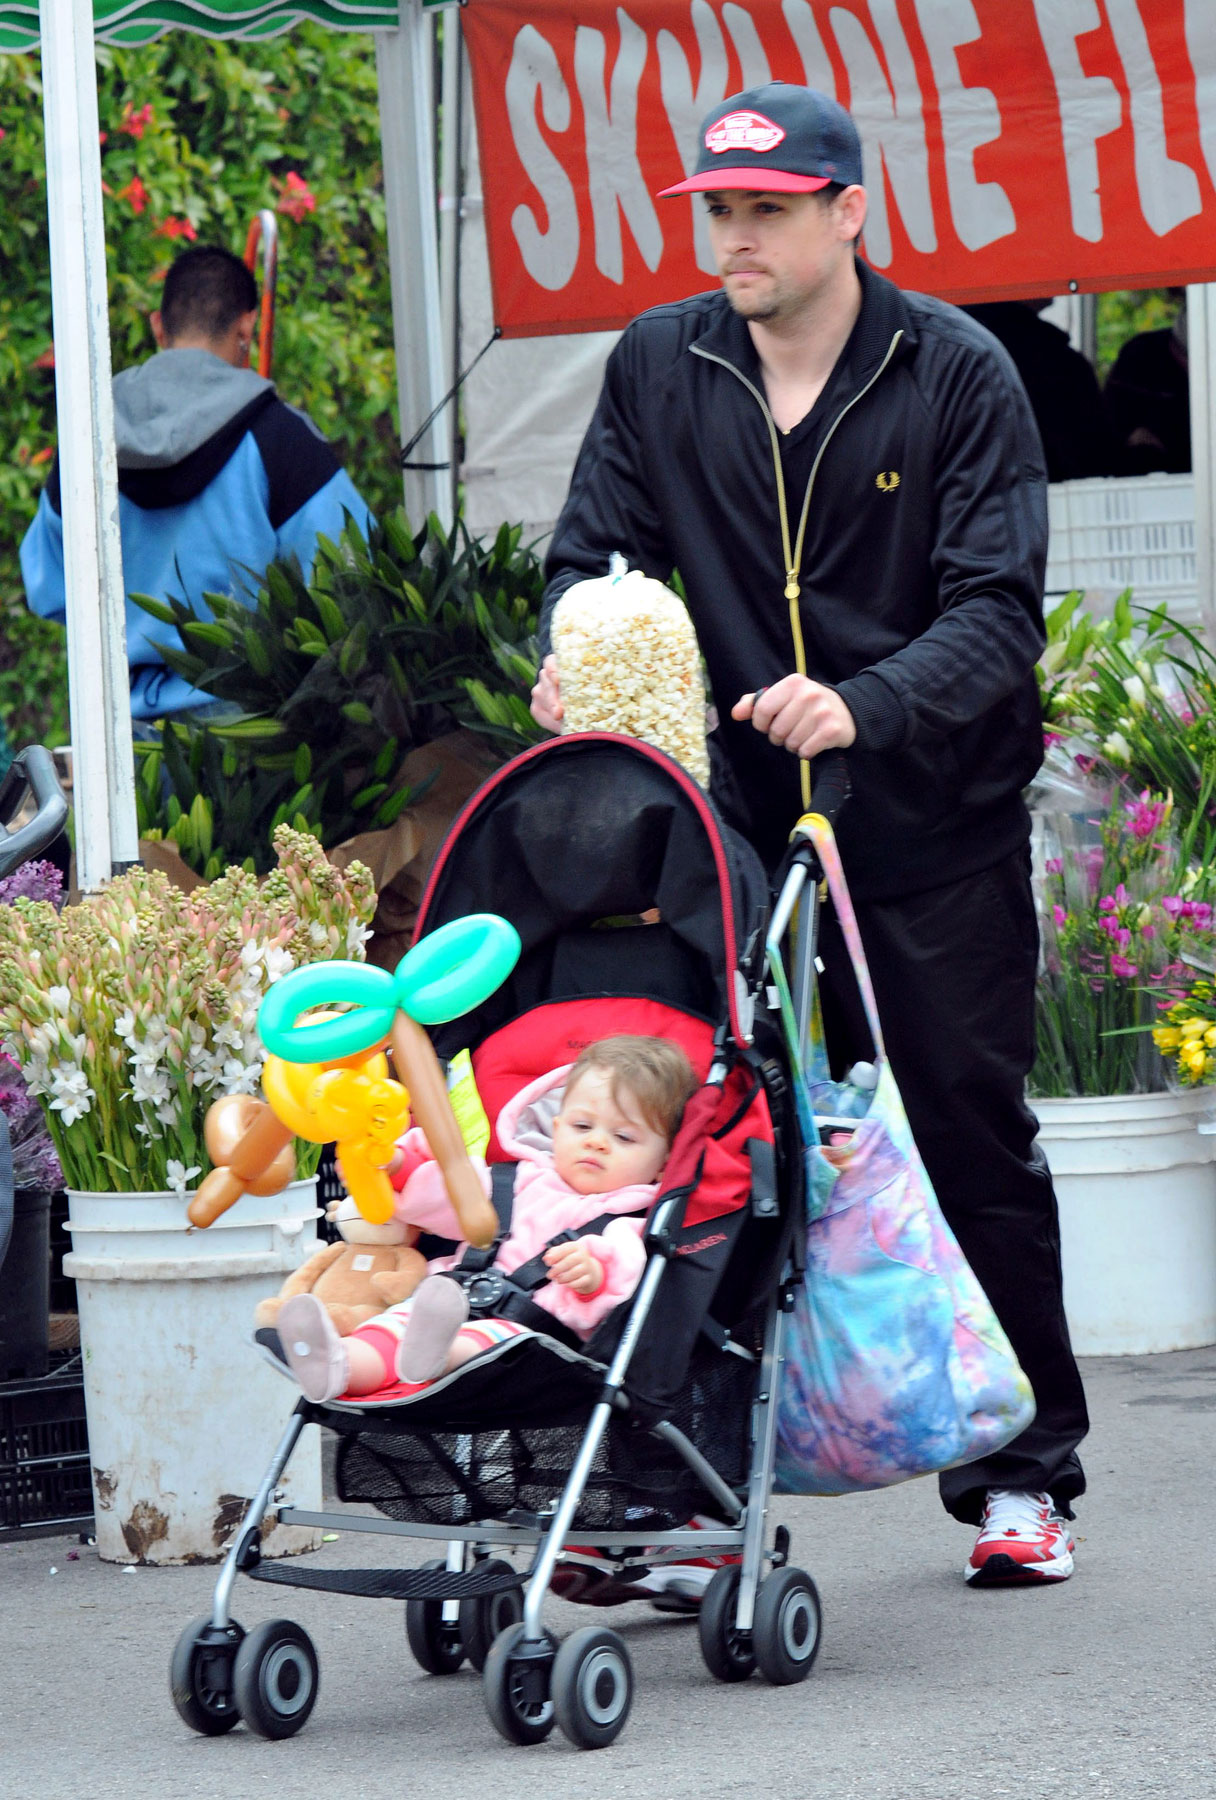 Joel Madden and Harlow: That's Just How They Stroll, Yo